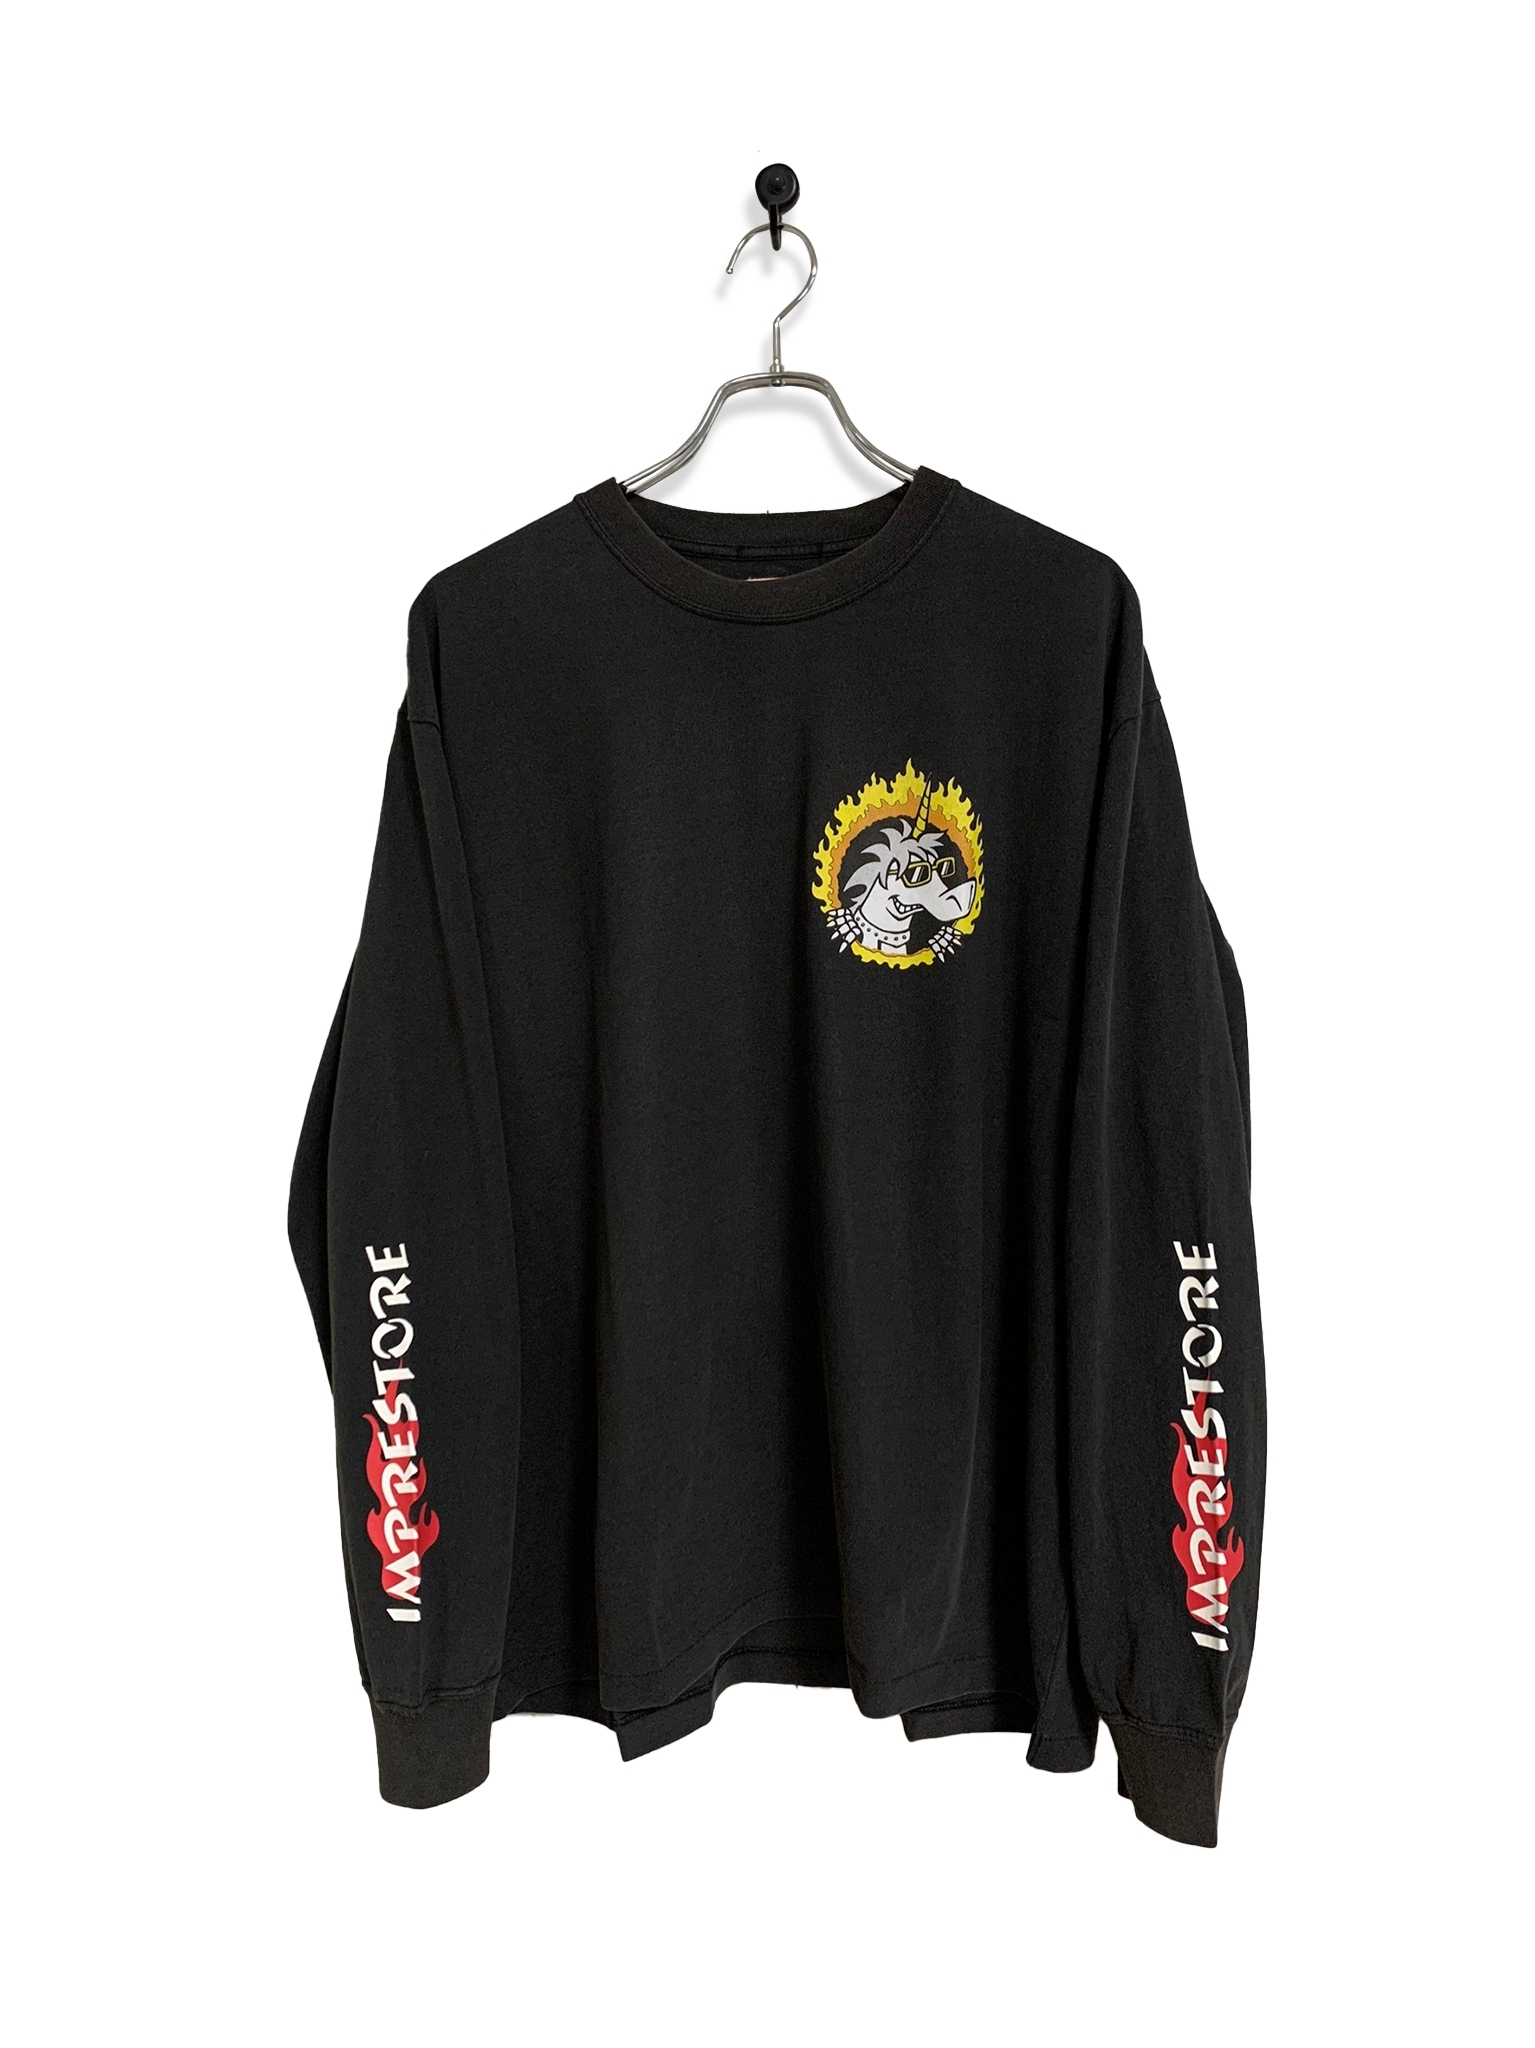 Original Long Sleeve-T / FIRE / black